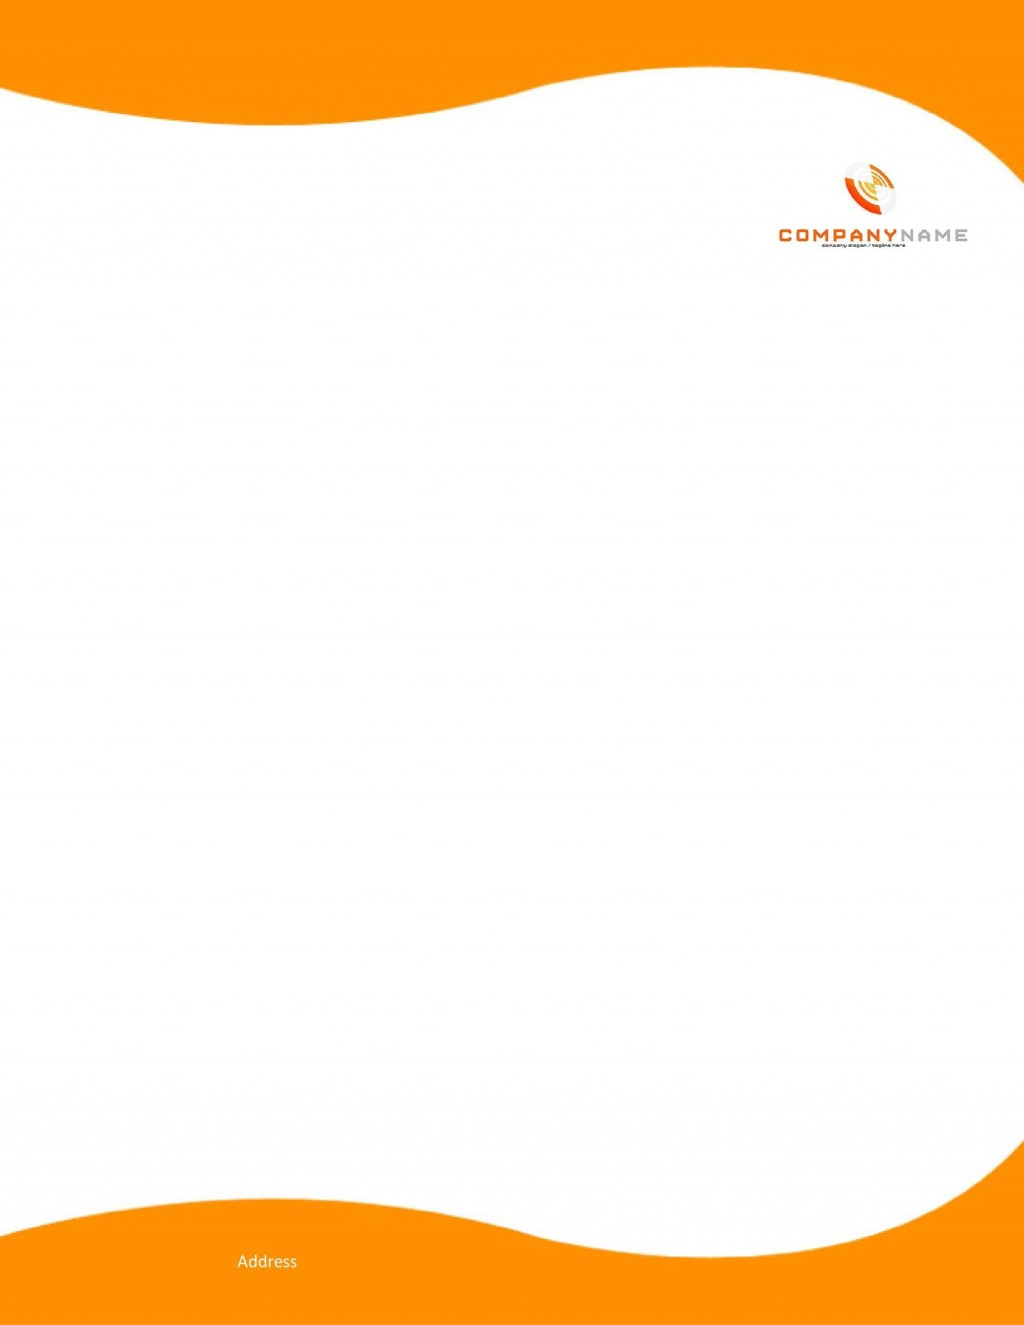 007 Fantastic Letterhead Example Free Download Design  Advocate Format Hospital In Word PdfLarge